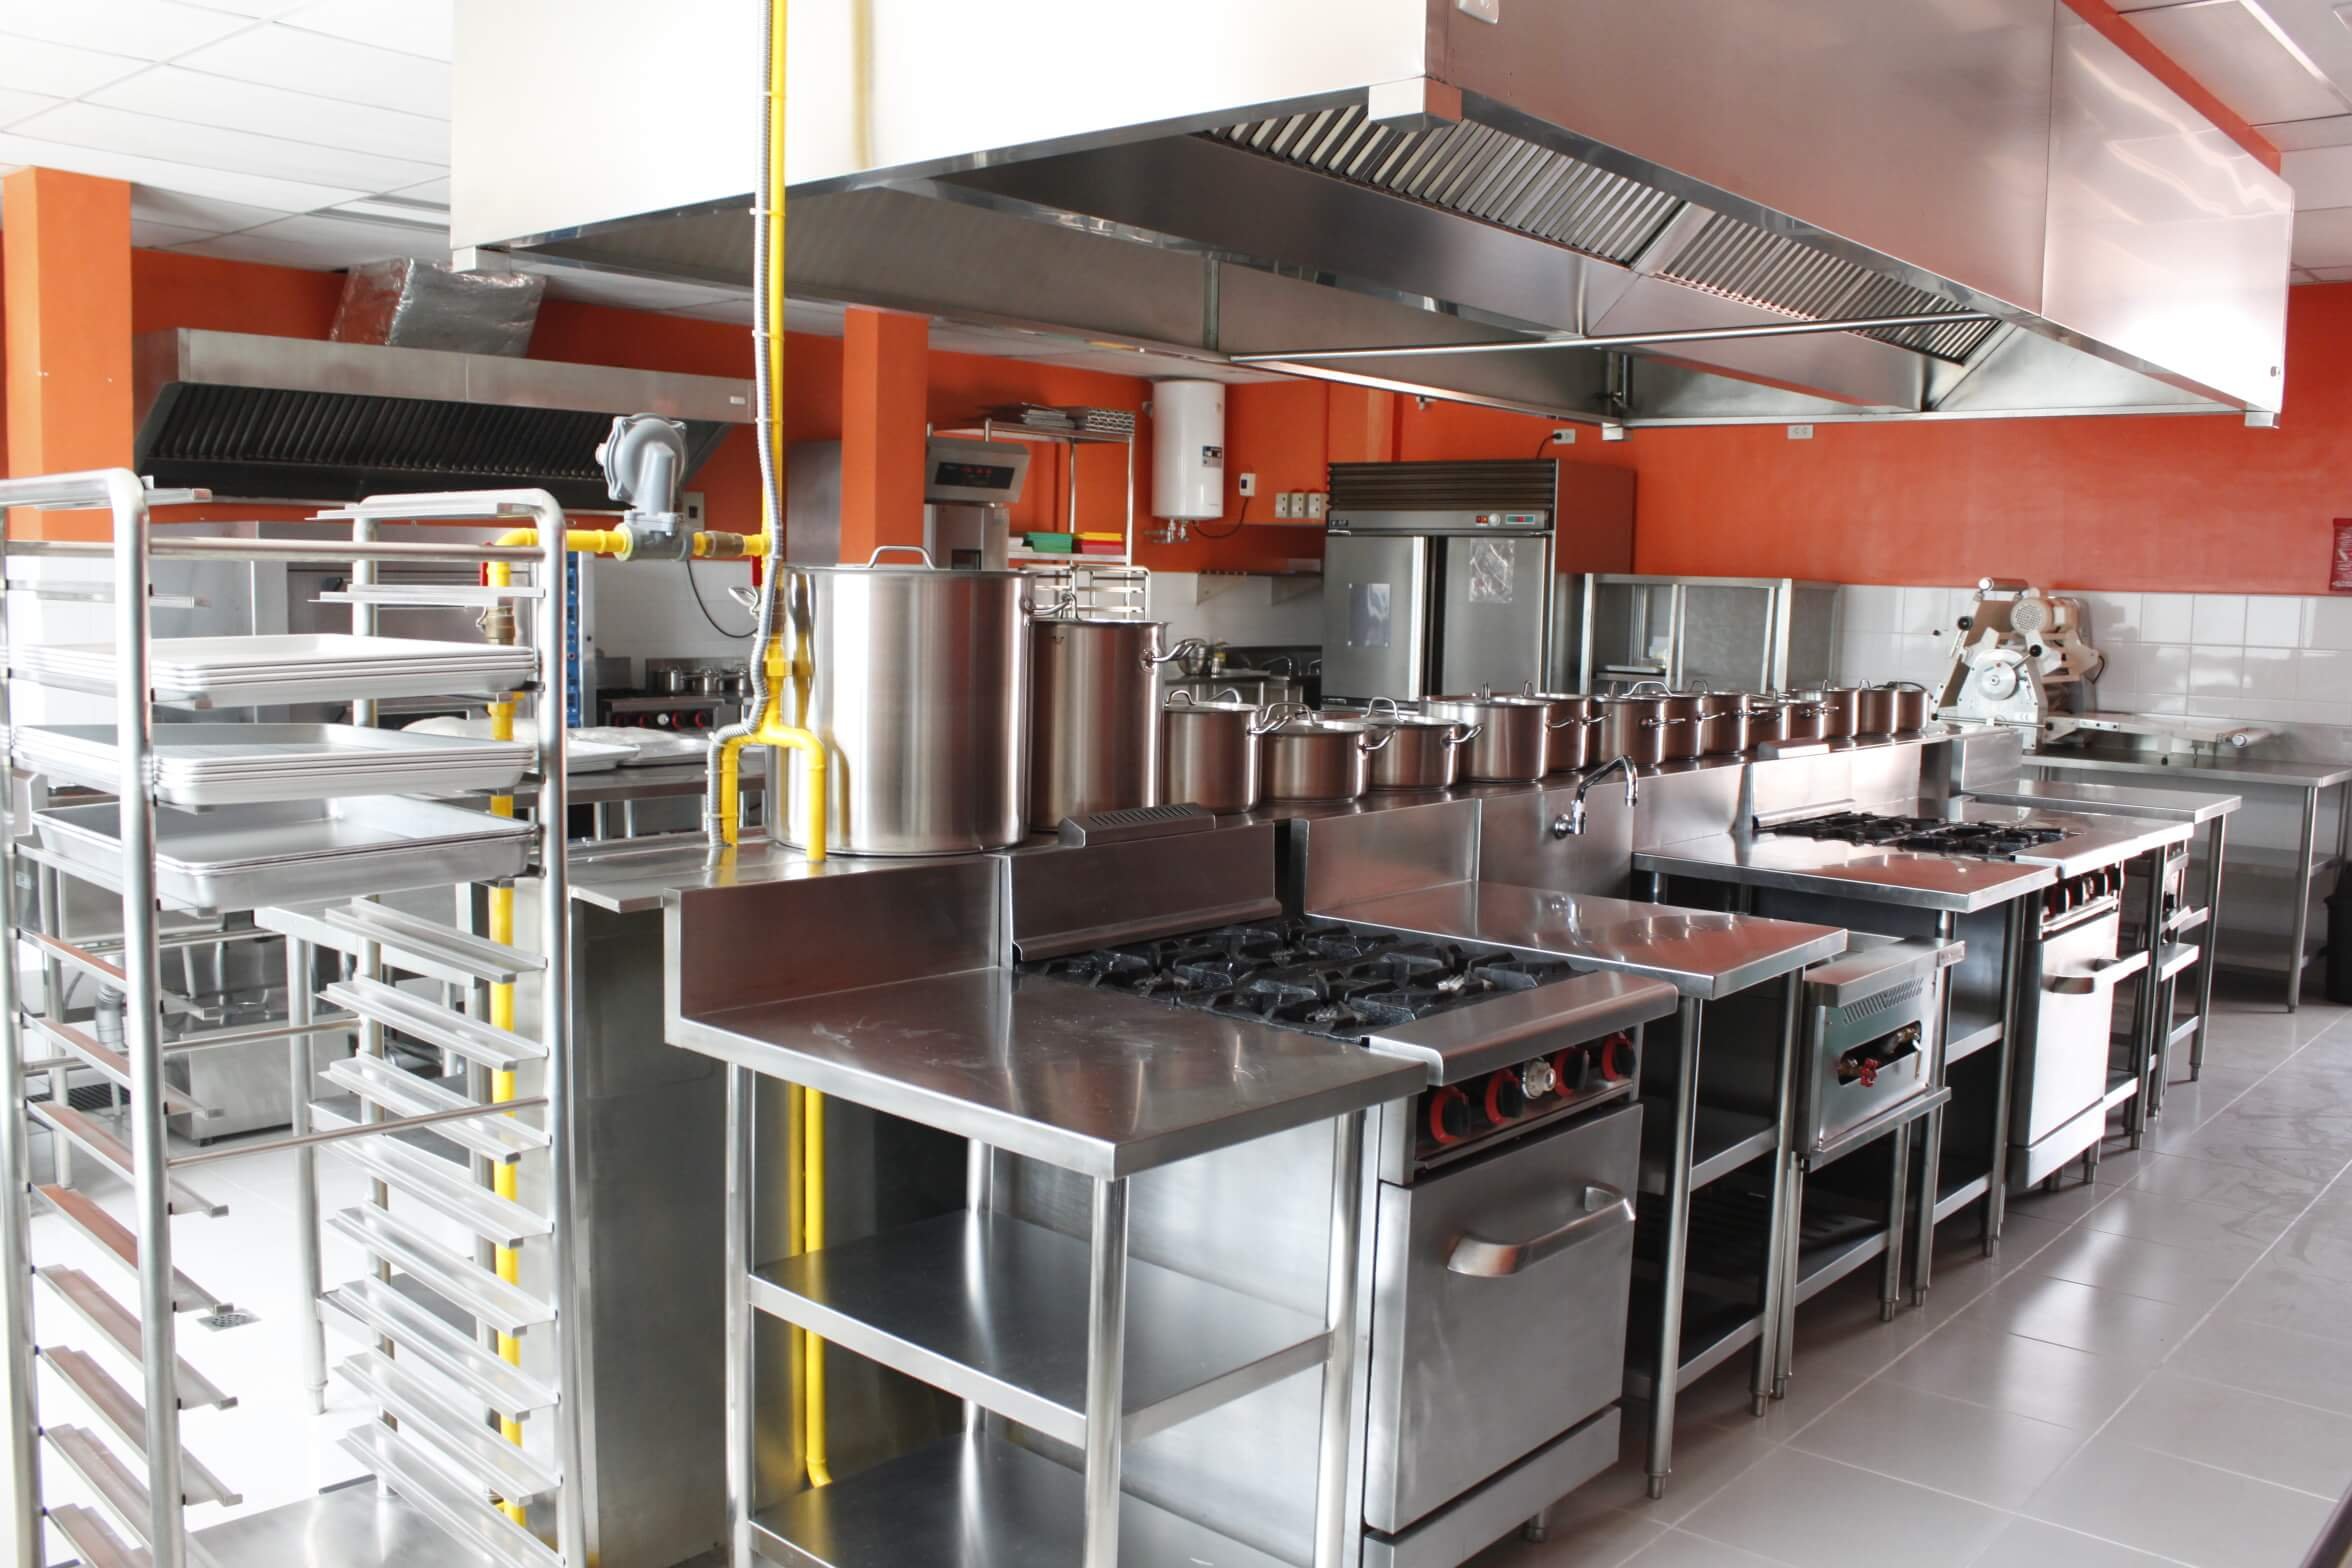 Pastry   hot kitchen pic 1